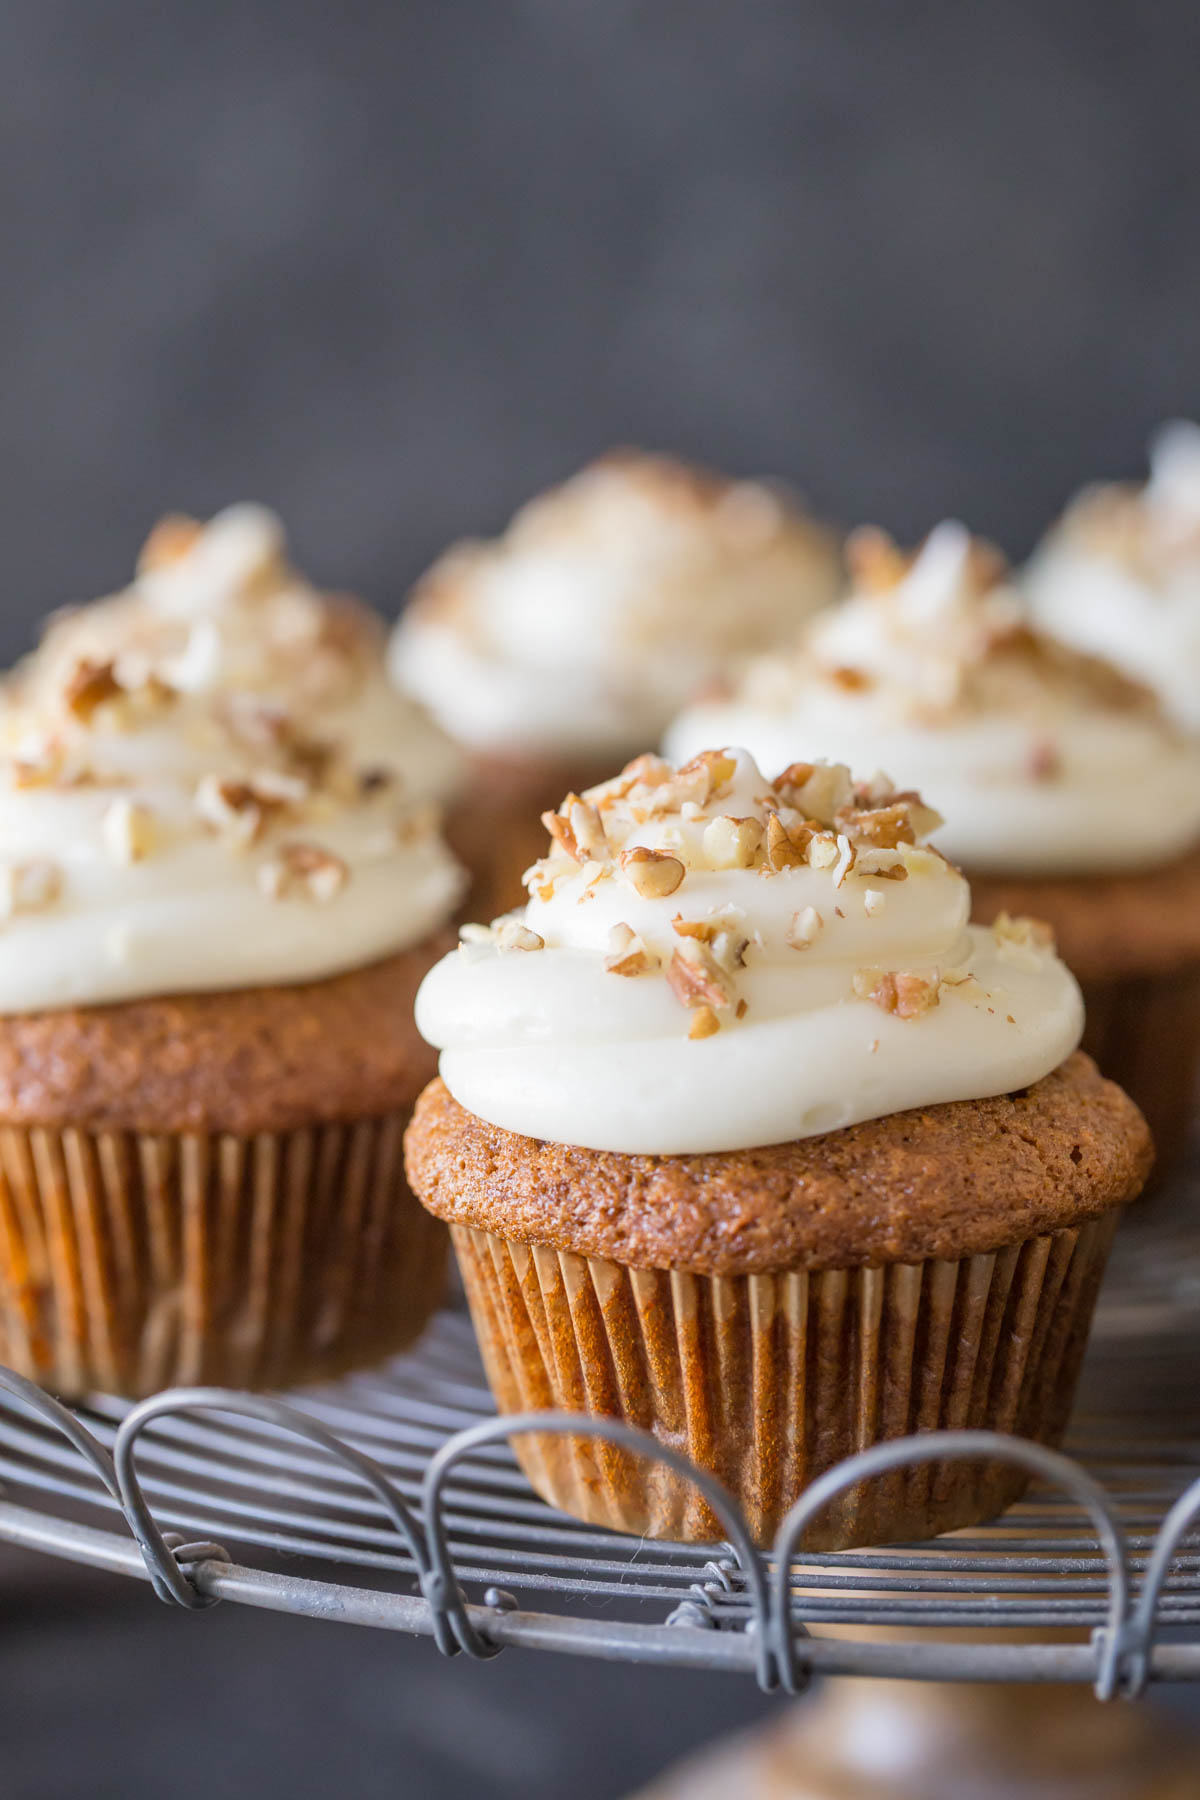 Carrot Cake Cupcakes on a cake stand.